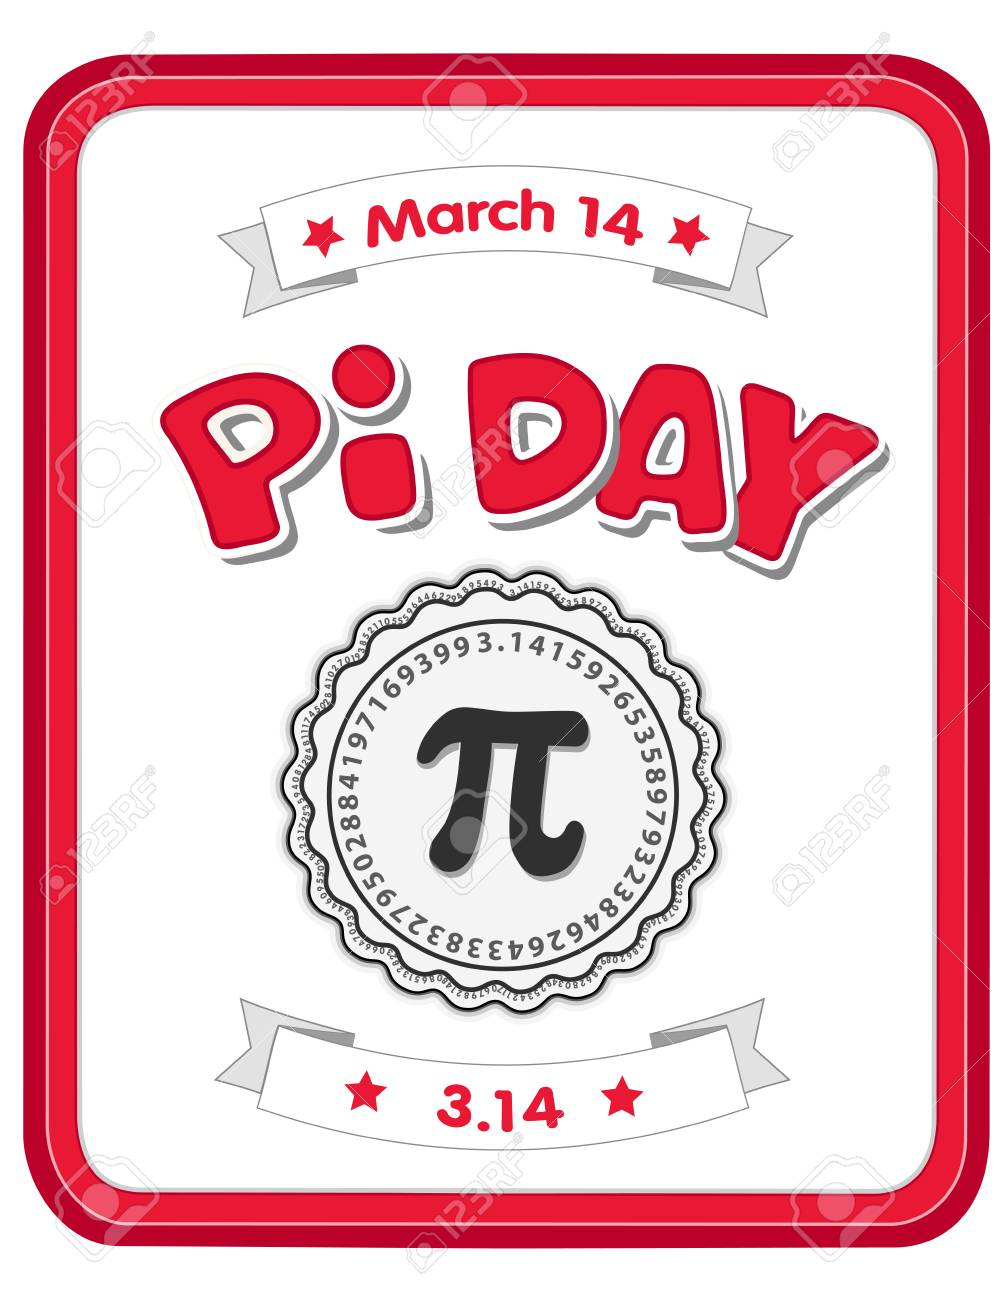 Happy Pi Day, March 14, to celebrate the mathematical constant pi, 3.14, and to eat lots of fresh baked sweet pie, international holiday, red frame whiteboard background. - 125108994